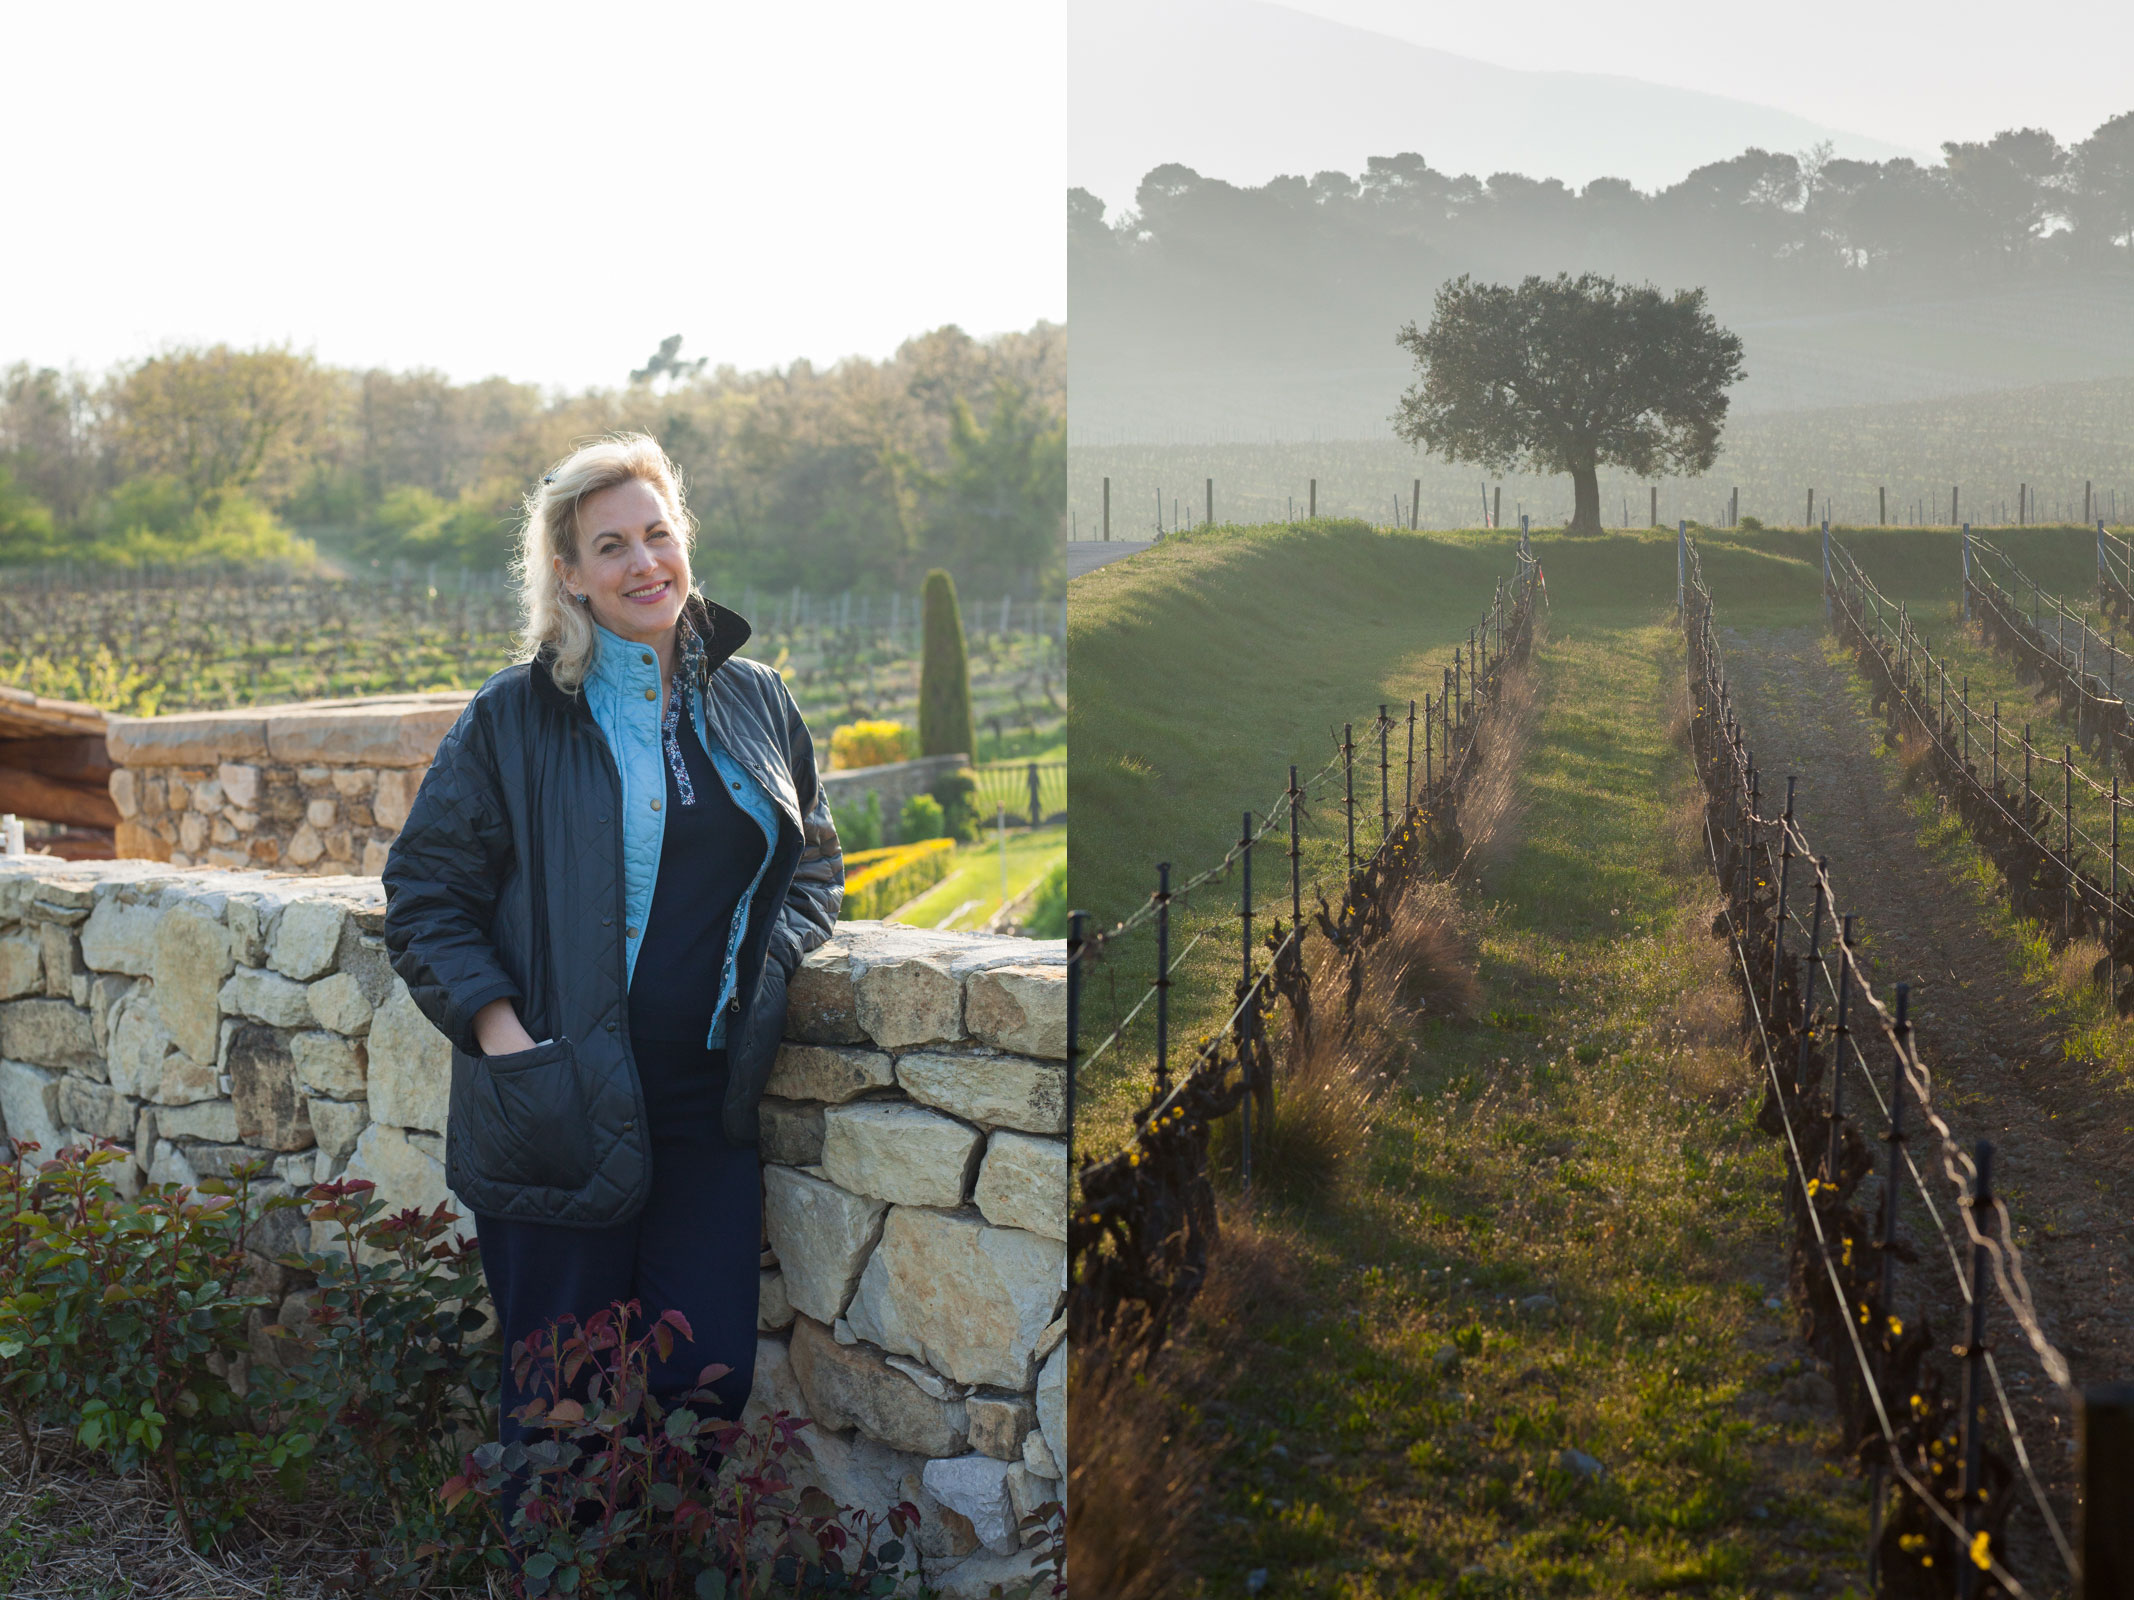 Nicole Rolet, the Principal of Chêne Bleu, and a lone olive tree in the Grenache vineyard. ©Kevin Day / Opening a Bottle